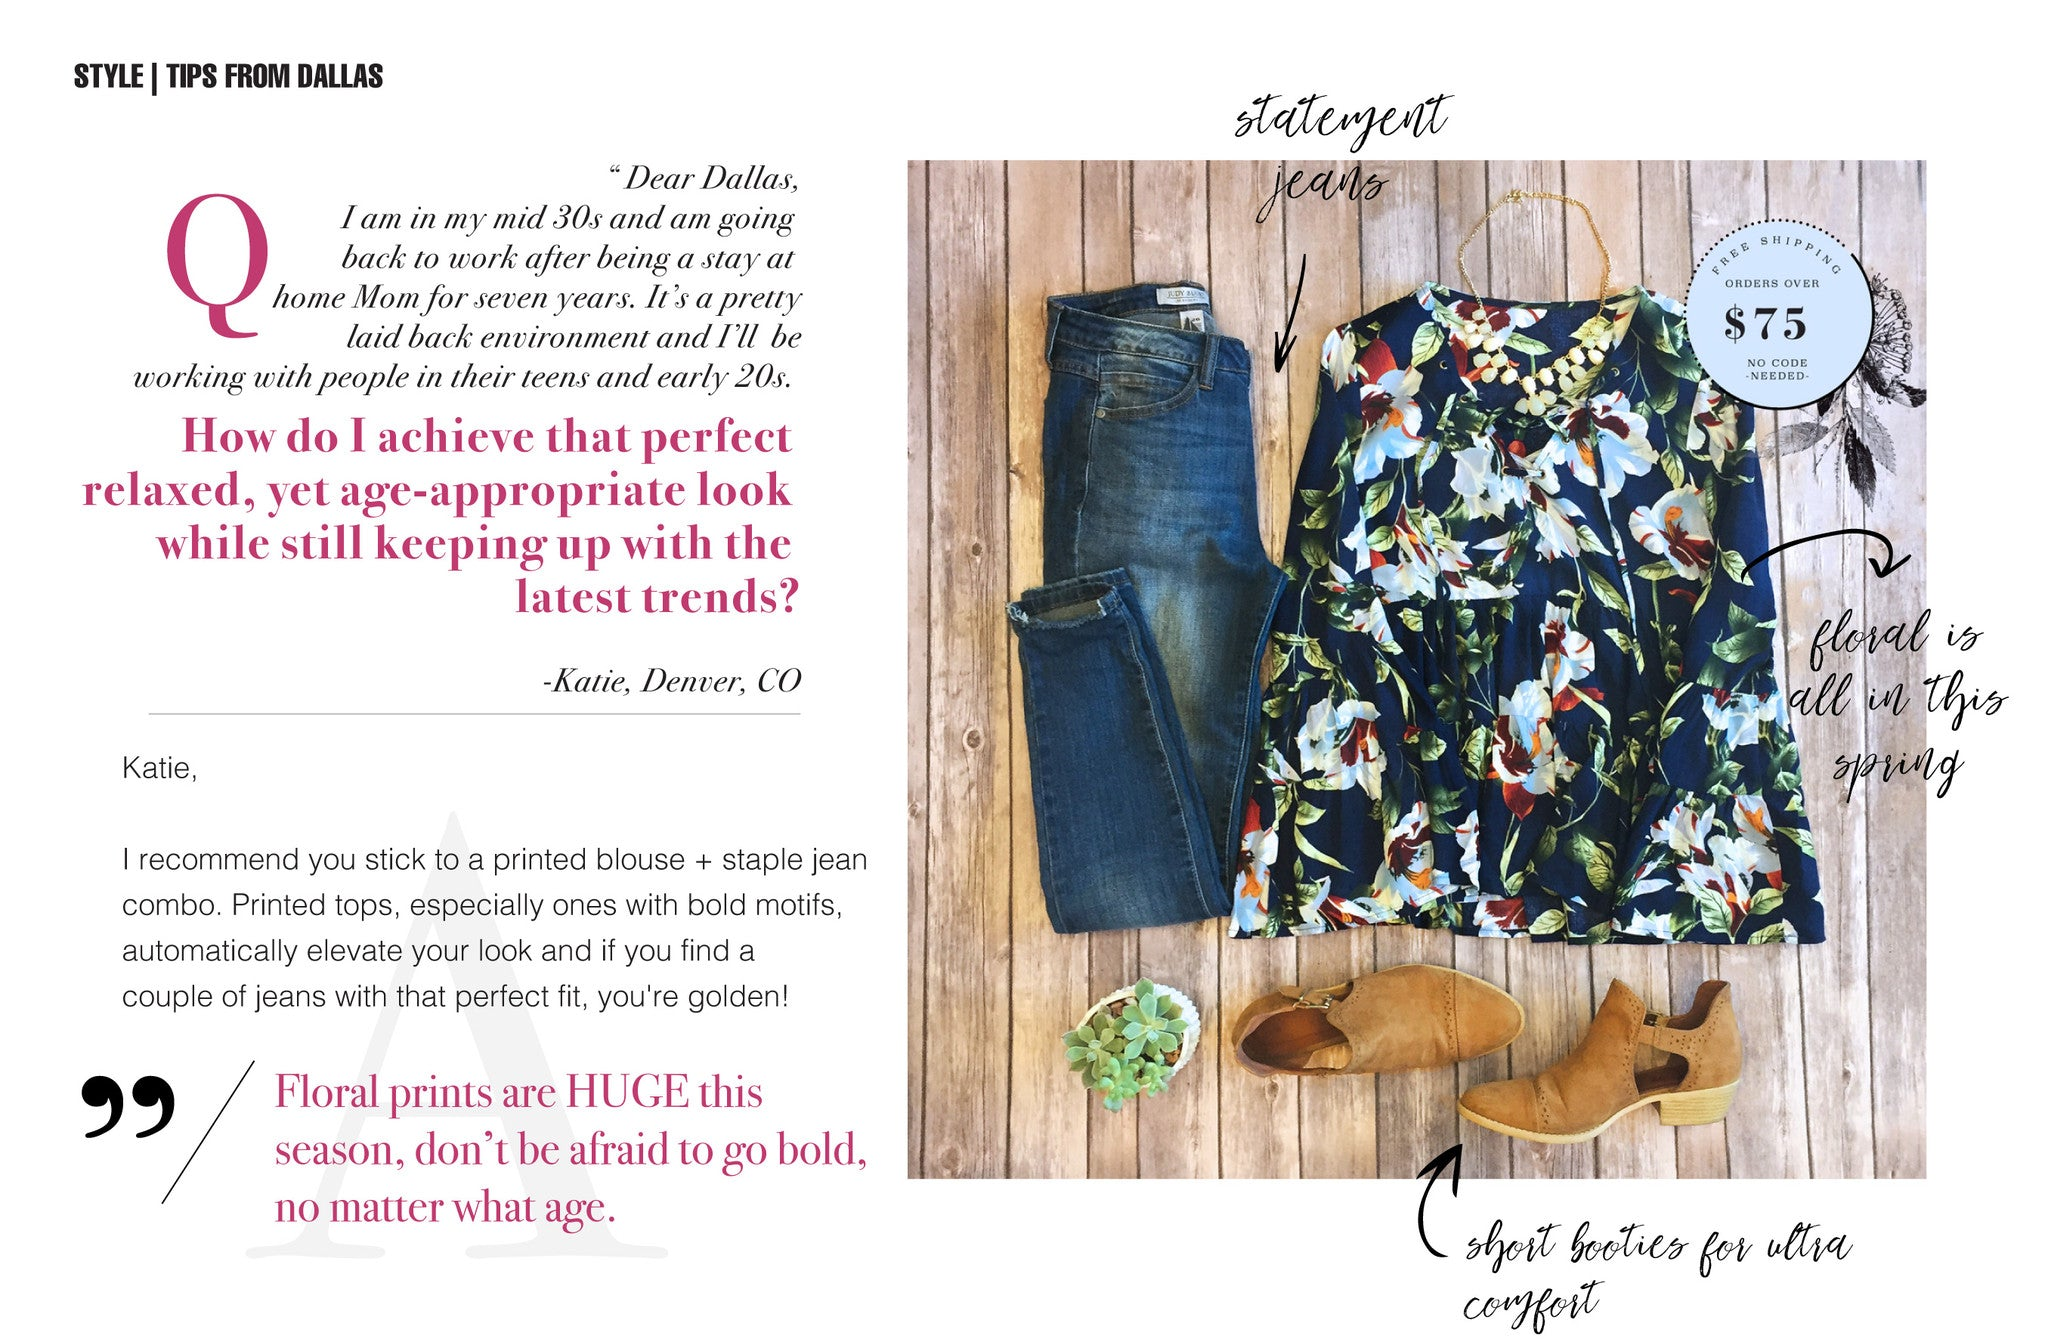 Dear Dallas Styles Tips From Our Favorite Personal Stylist